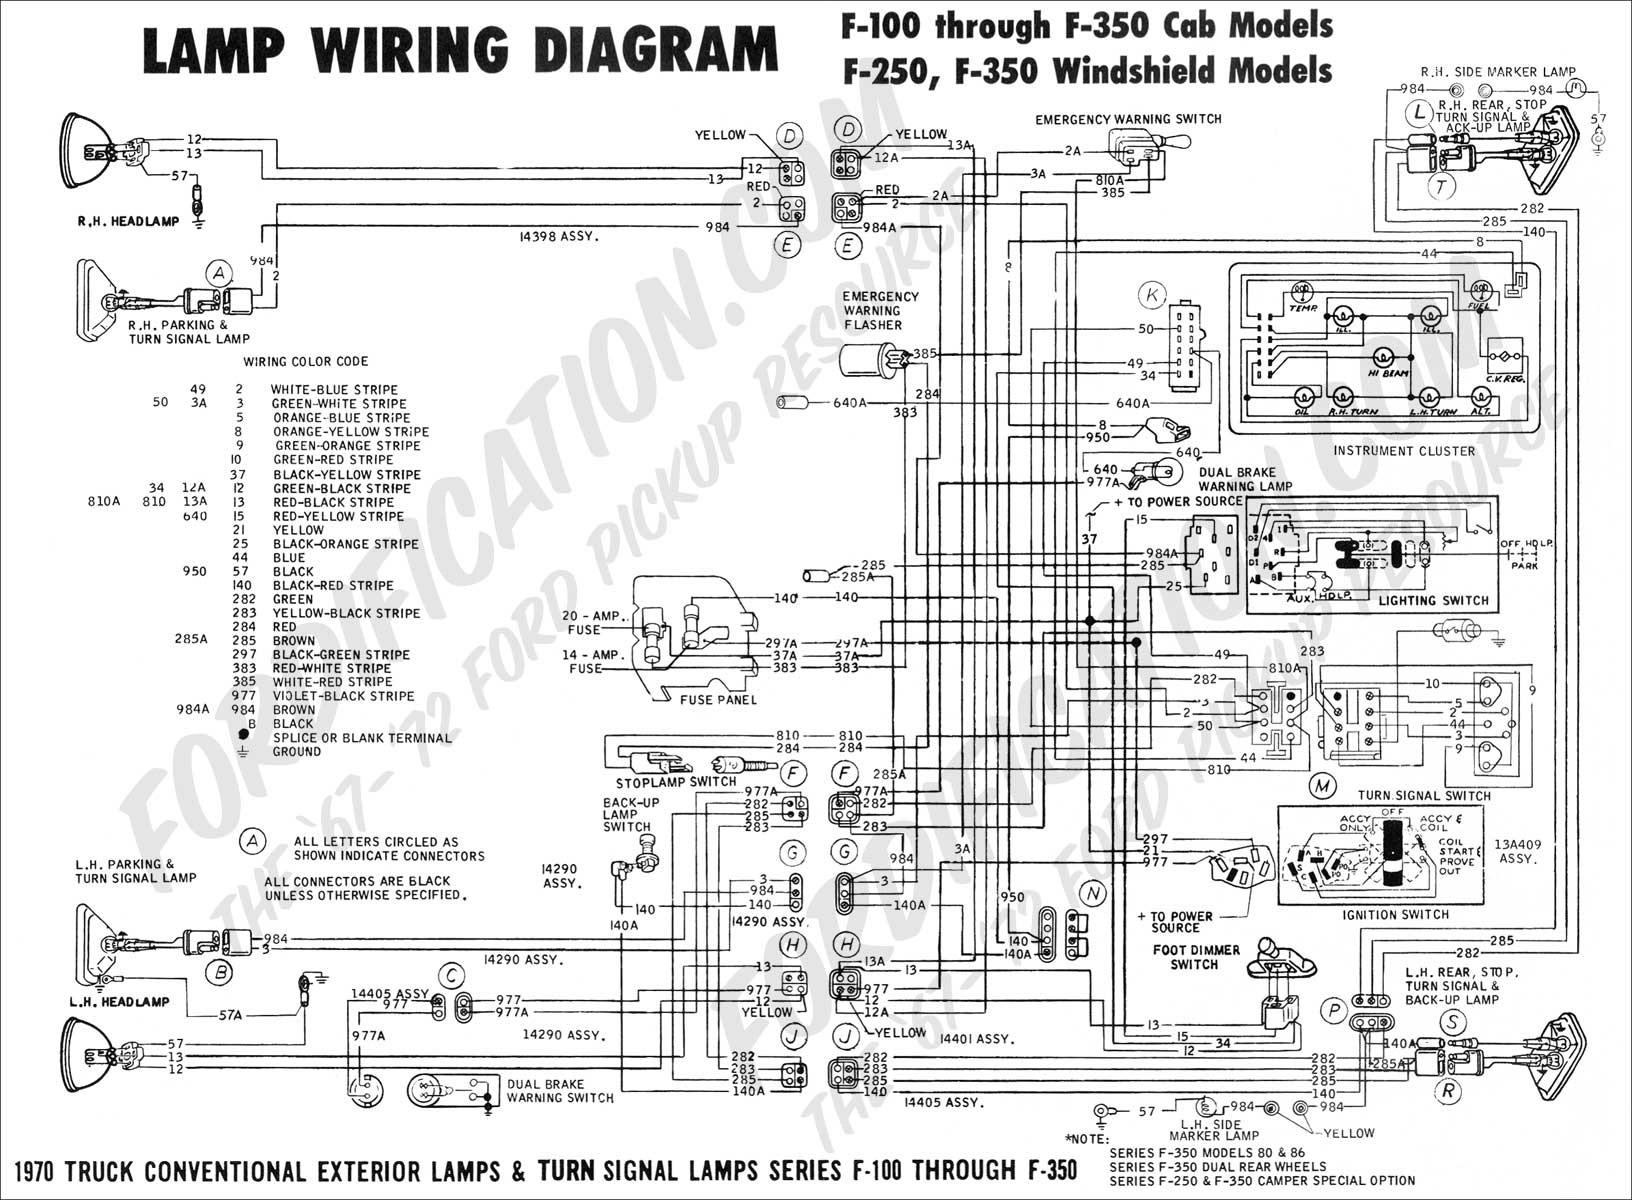 1968 f600 wiring diagram automotive block diagram u2022 rh carwiringdiagram today 1992 Ford Alternator Wiring Diagram 1989 Ford Alternator Wiring Diagram